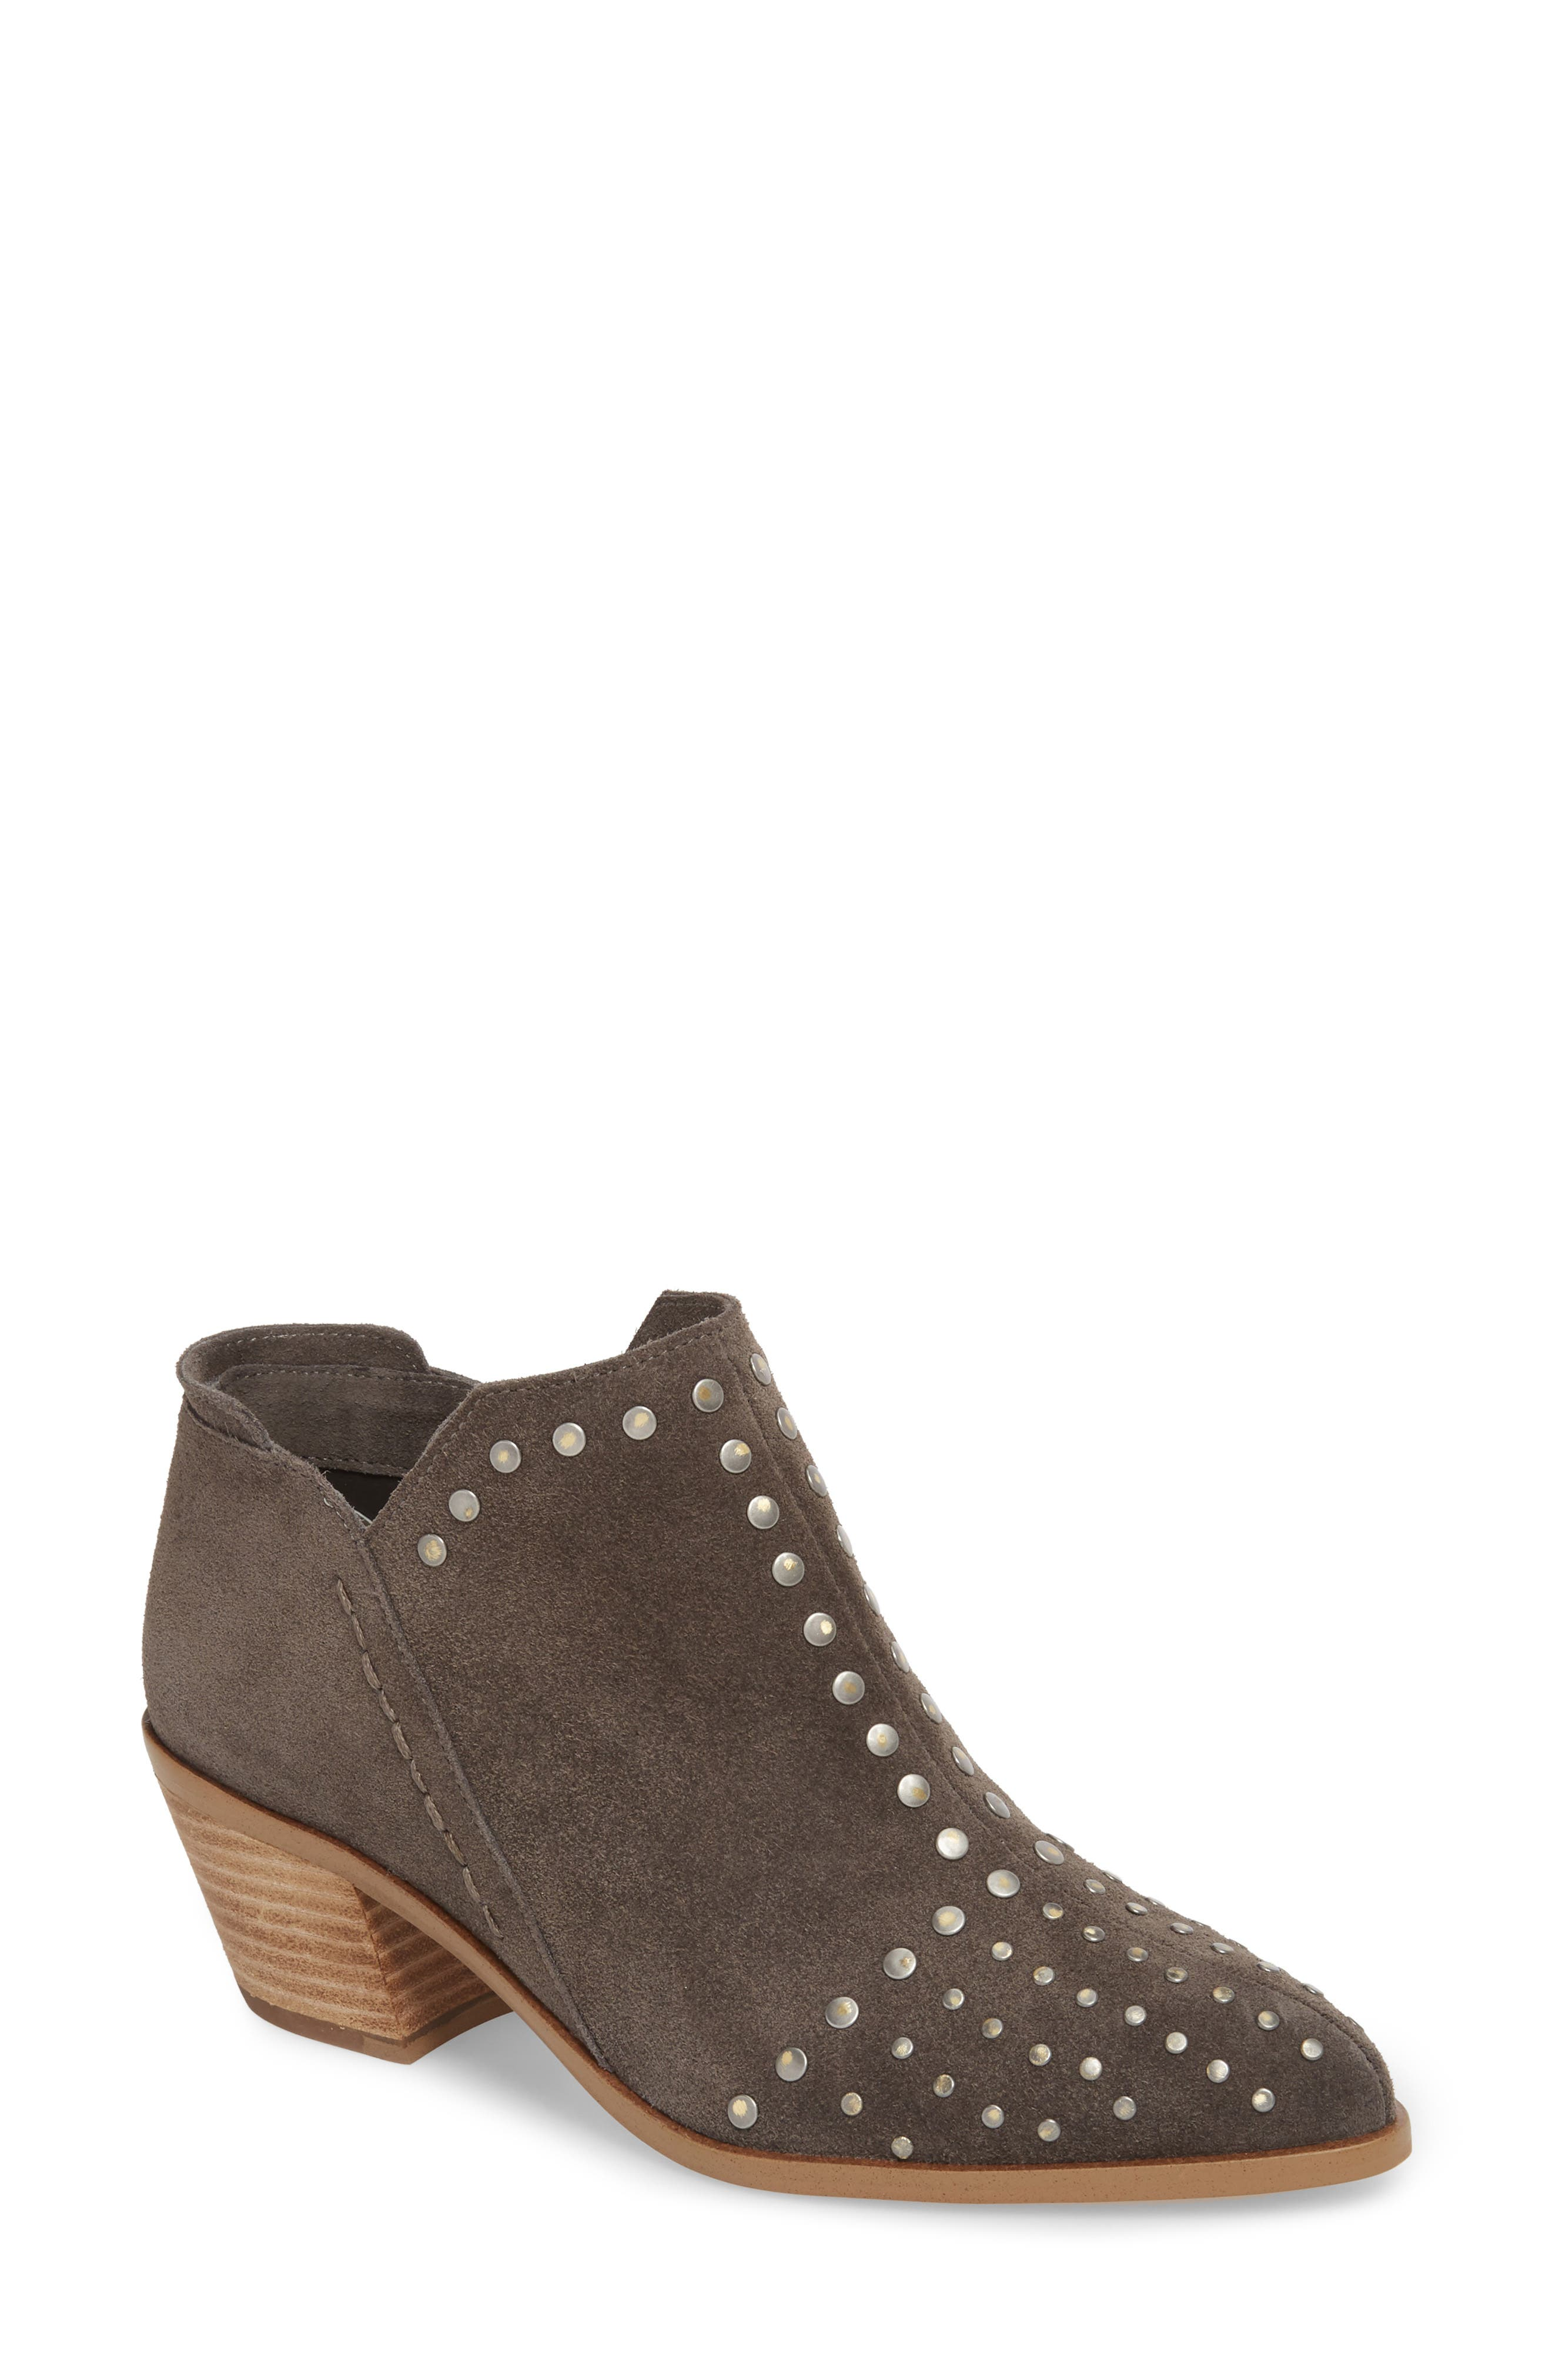 Loka Studded Bootie,                         Main,                         color, CHARCOAL SUEDE